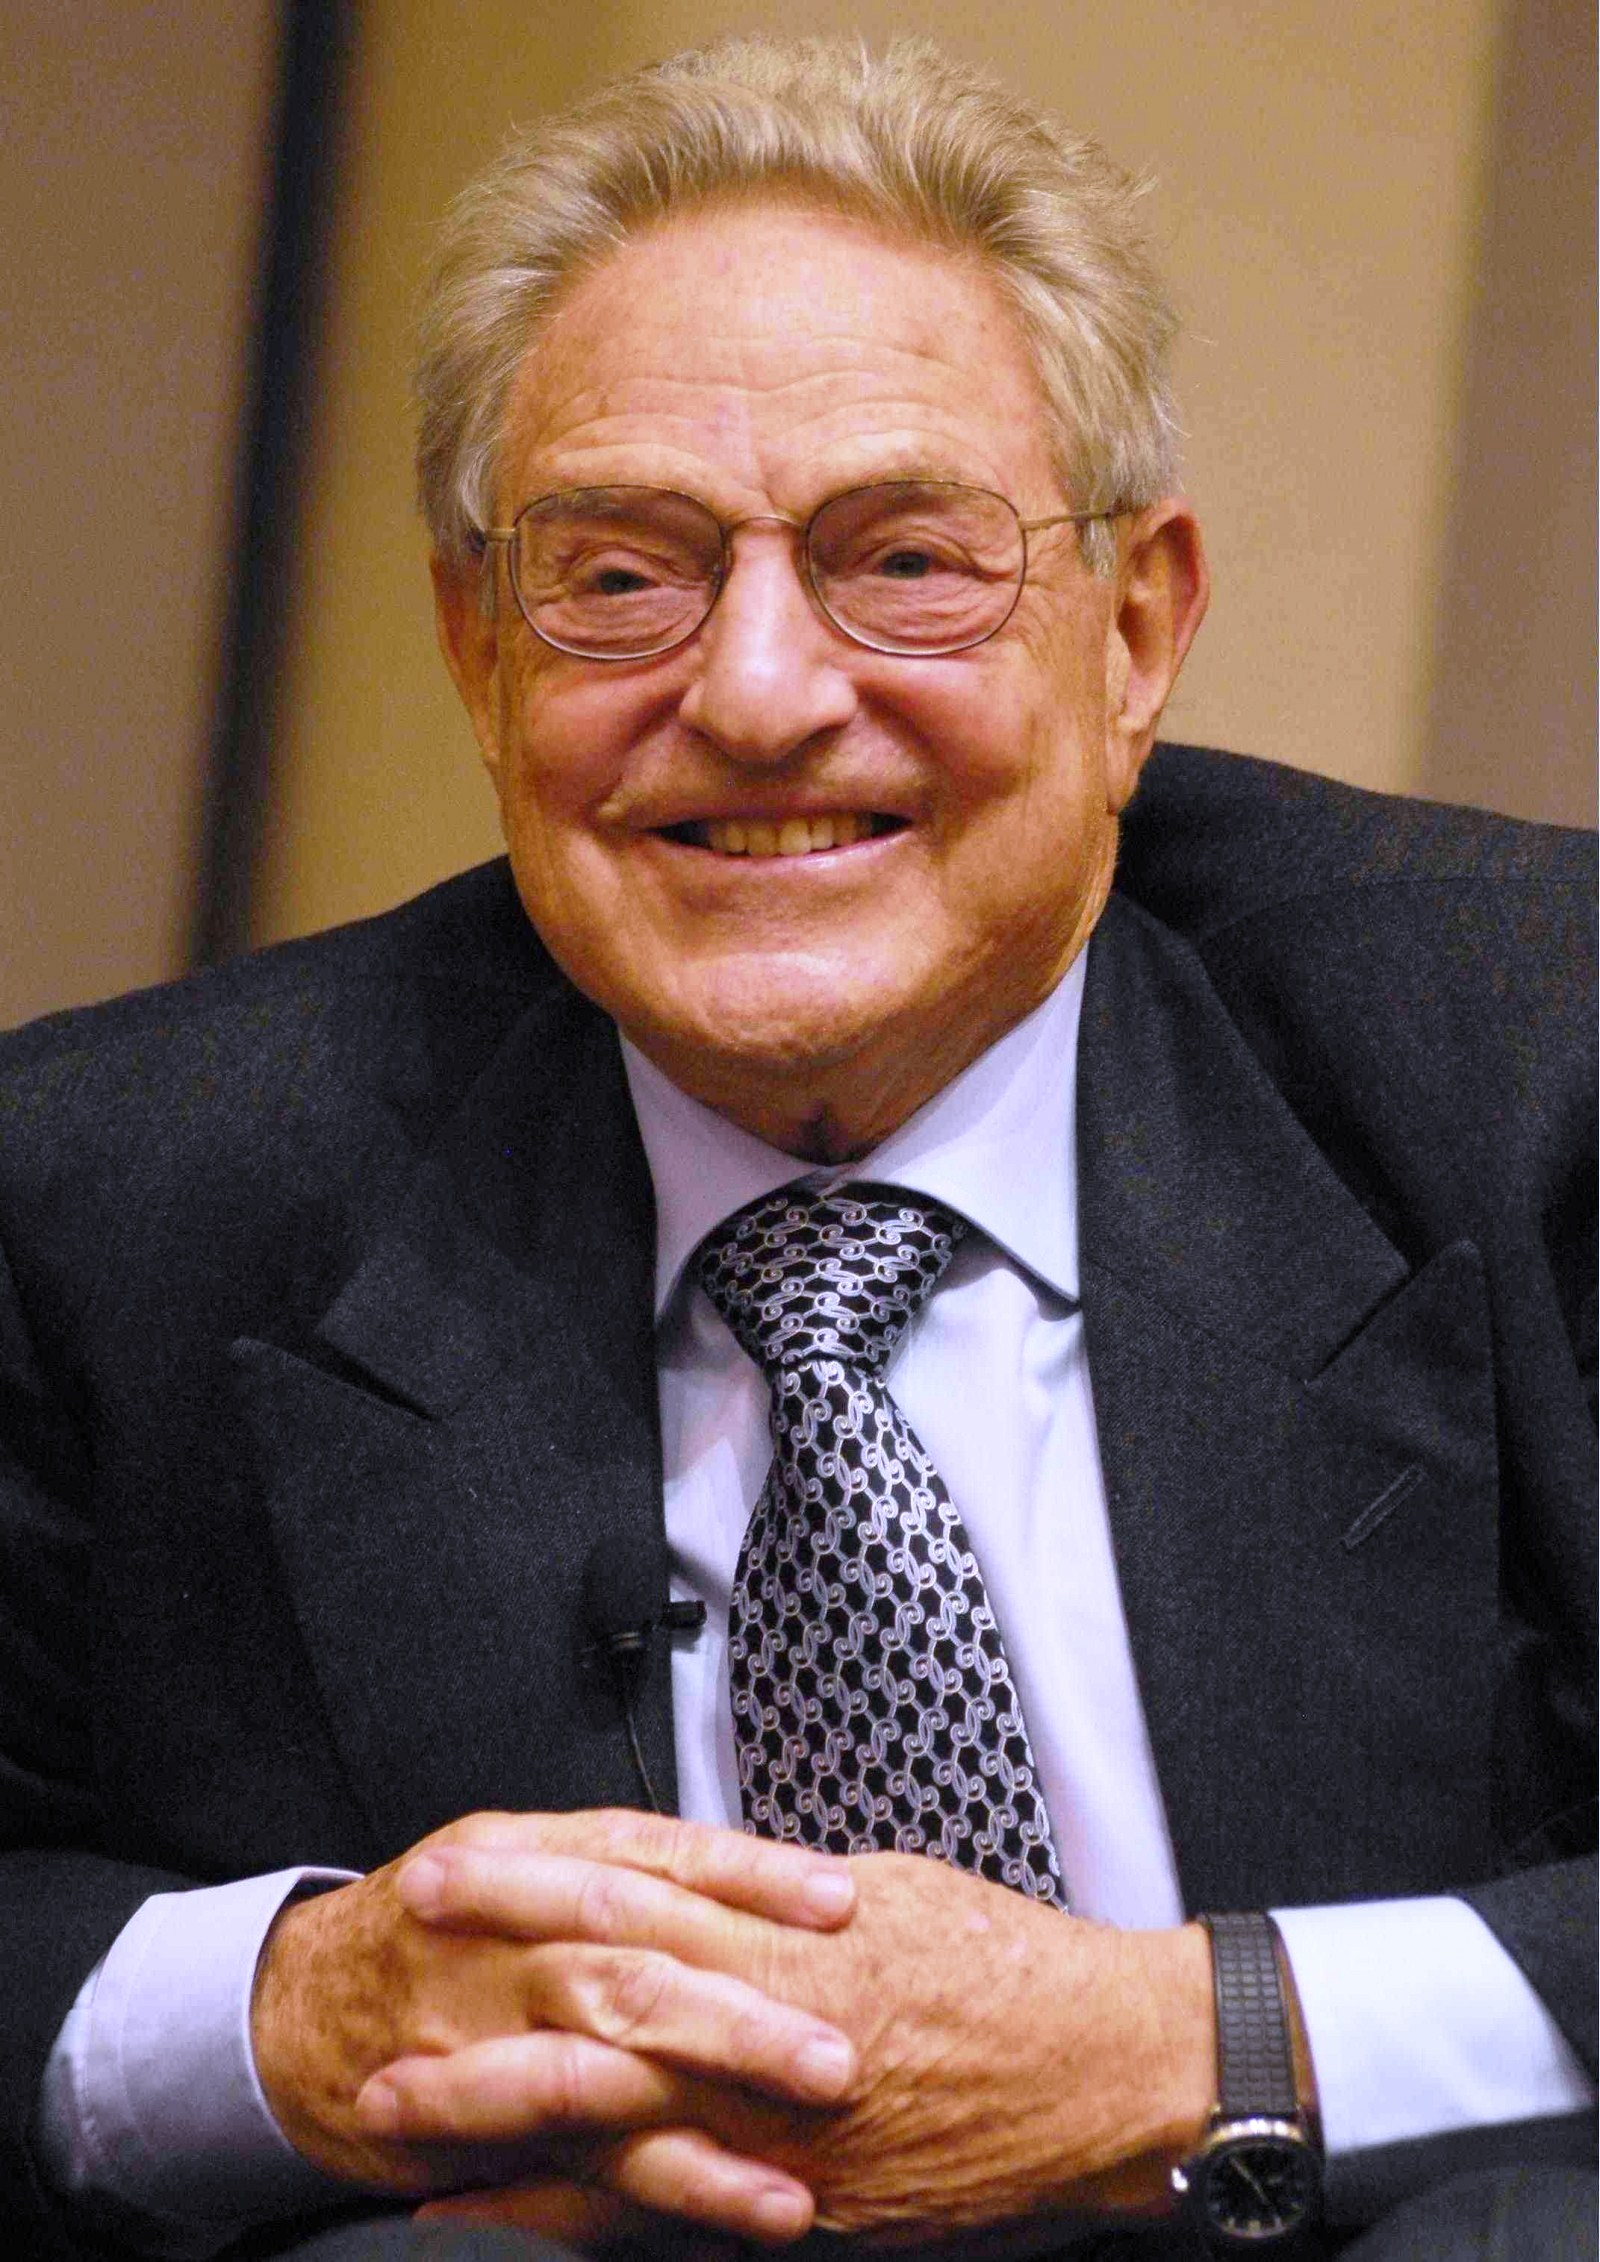 George Soros: Last chance for Ukraine and Europe